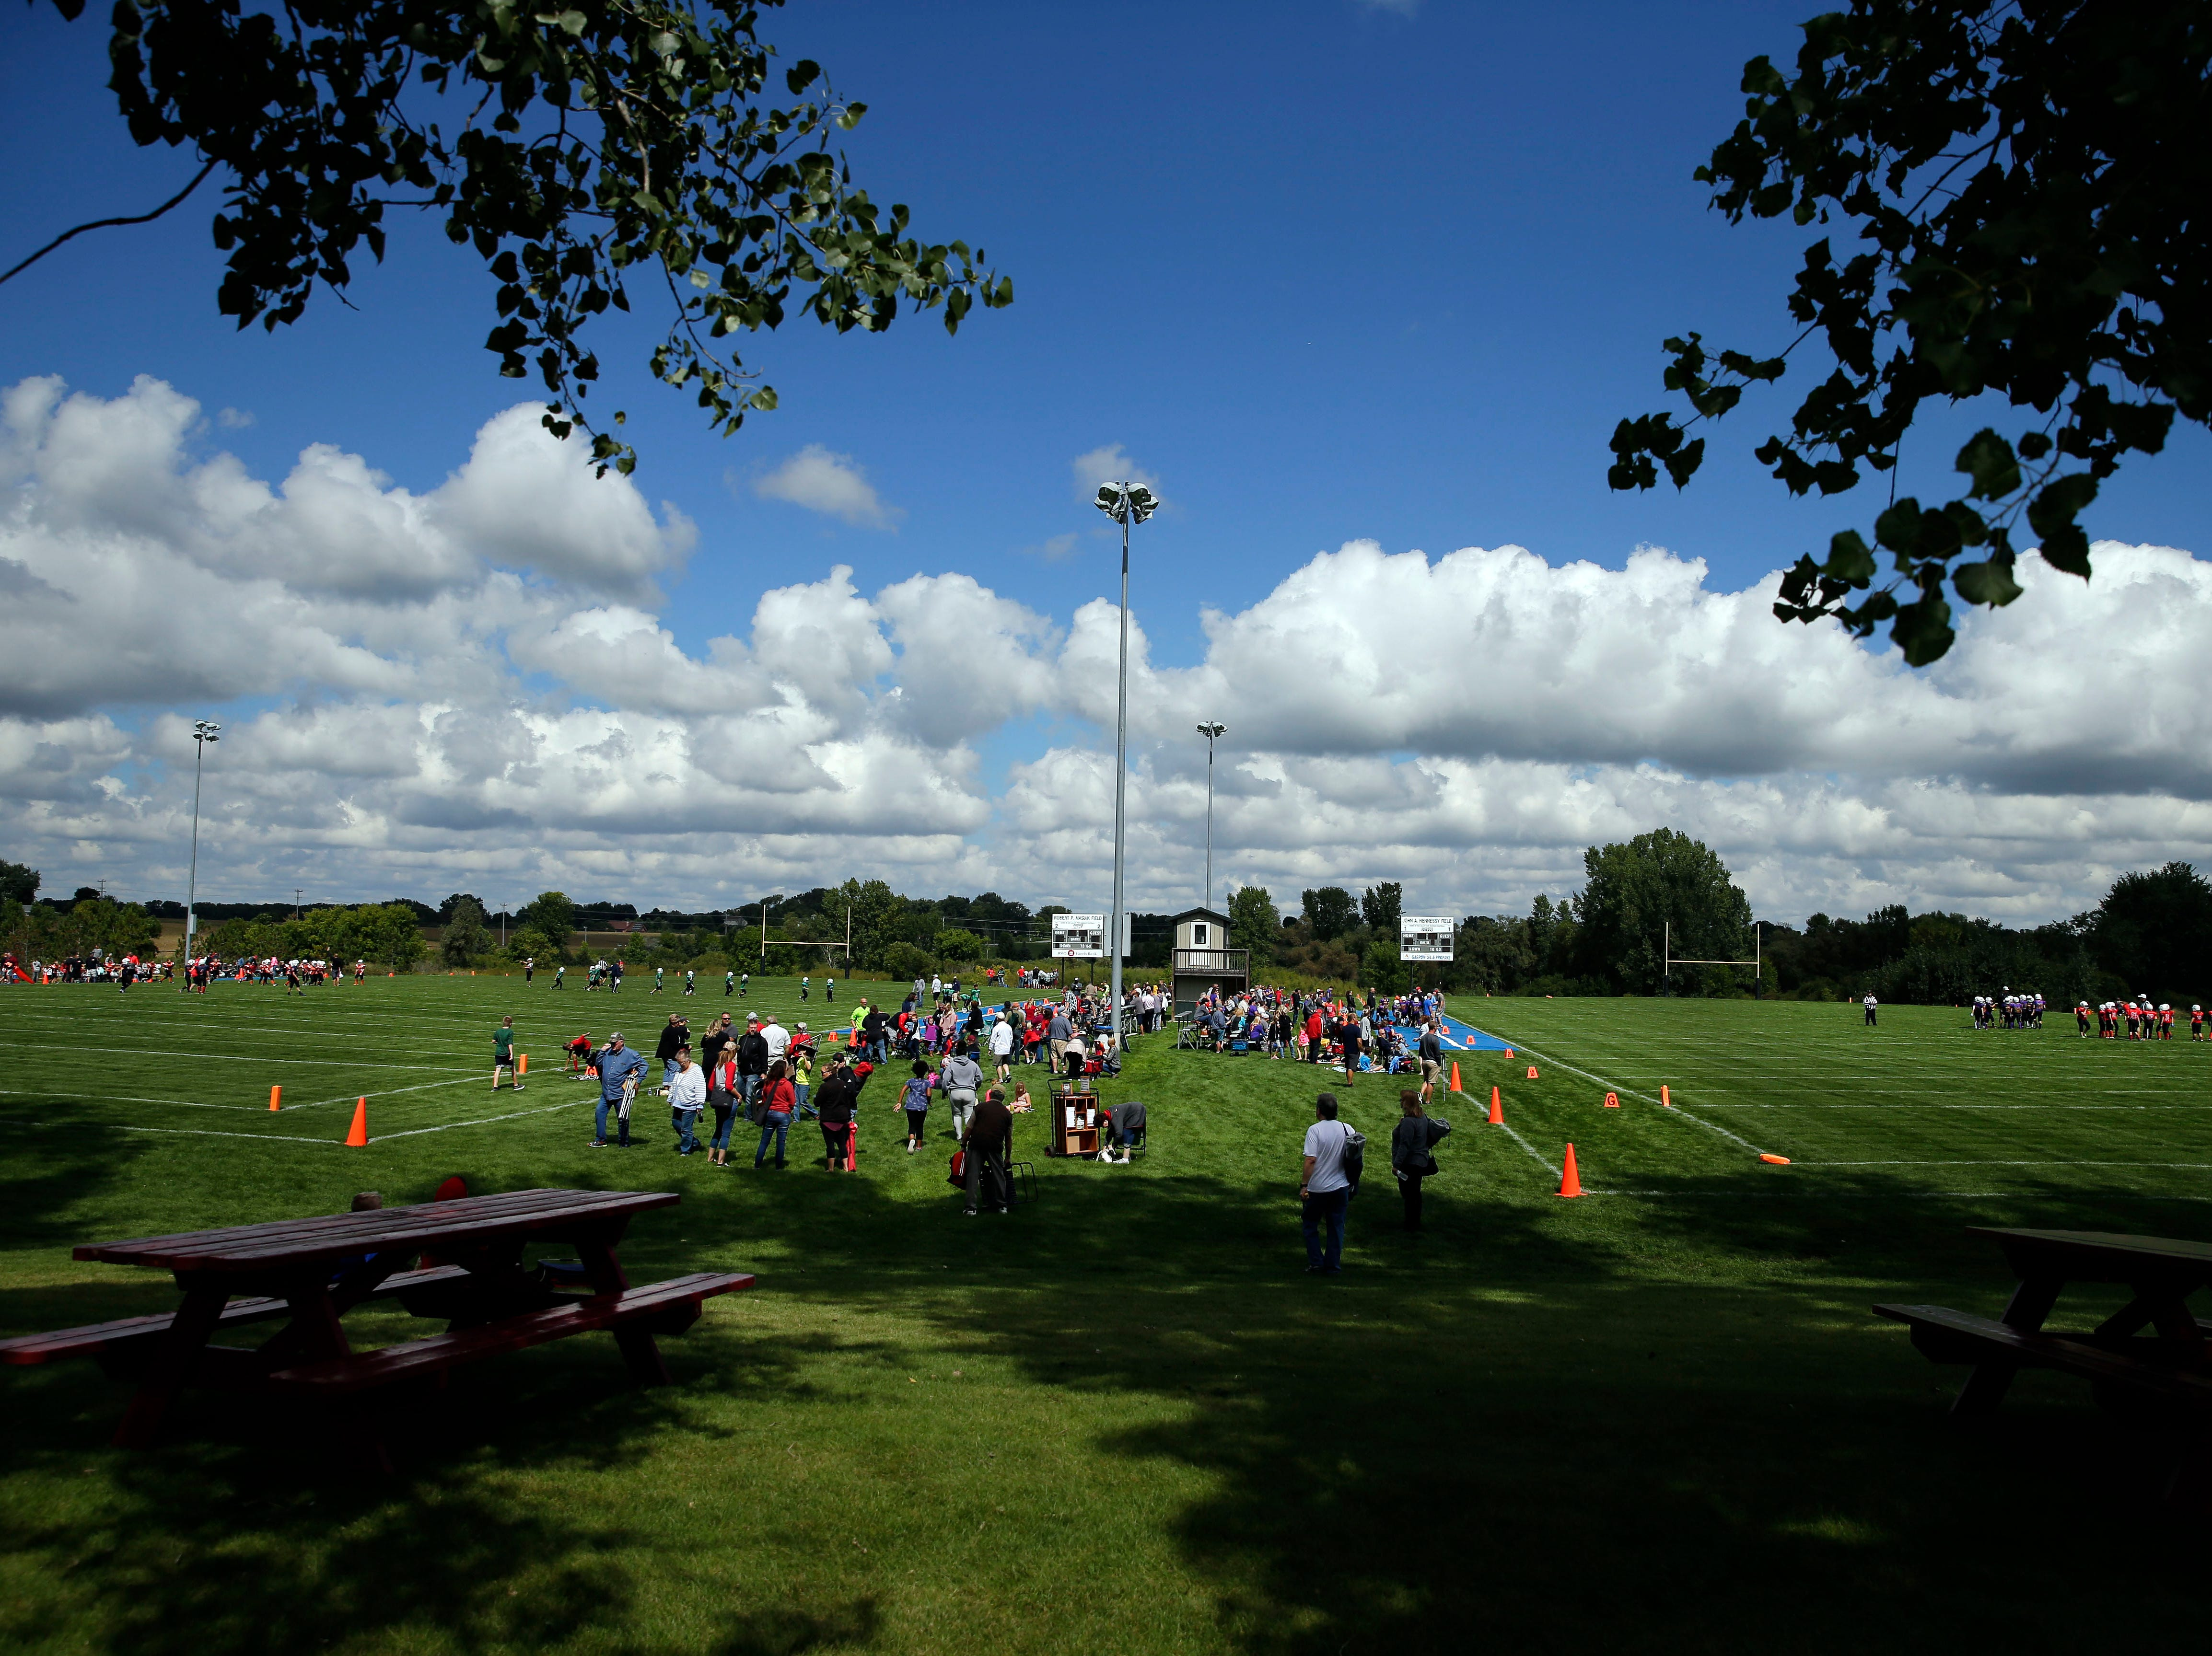 Fox Valley Pop Warner Football opens the season with cool temperatures Saturday, September 8, 2018, at Plamann Park in Grand Chute, Wis.